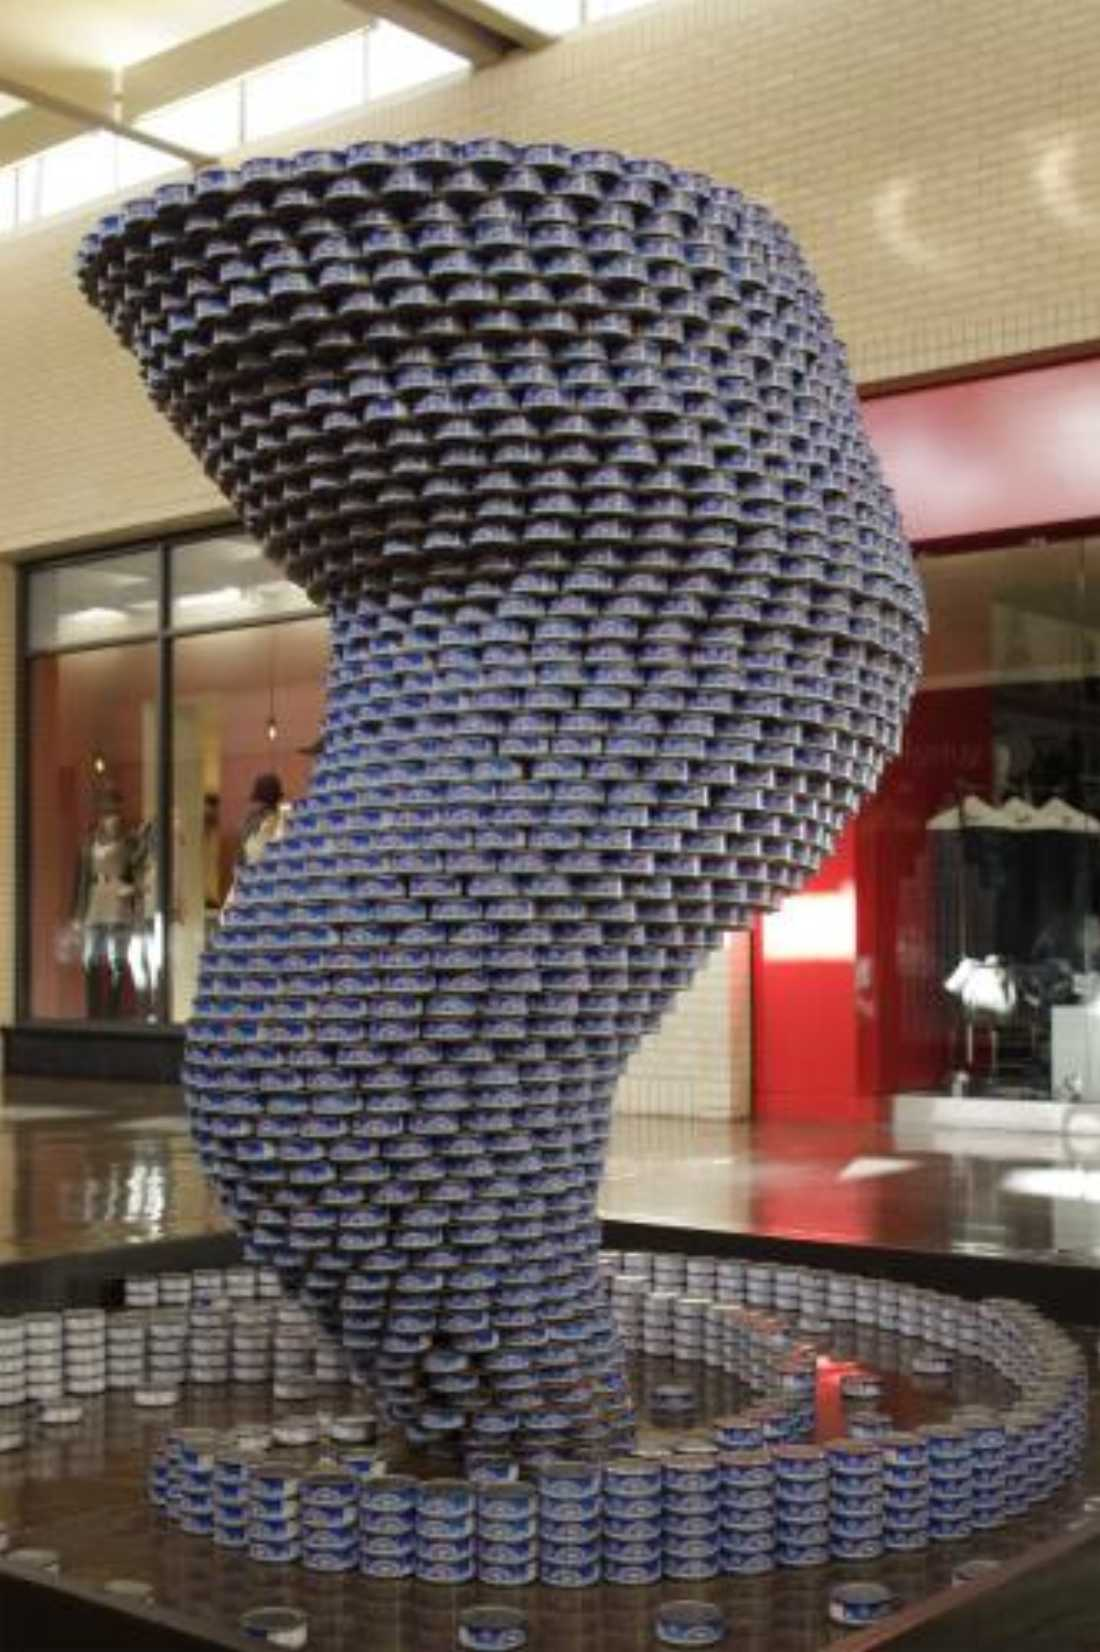 Head to North East Mall and check out the can art at CANstruction.